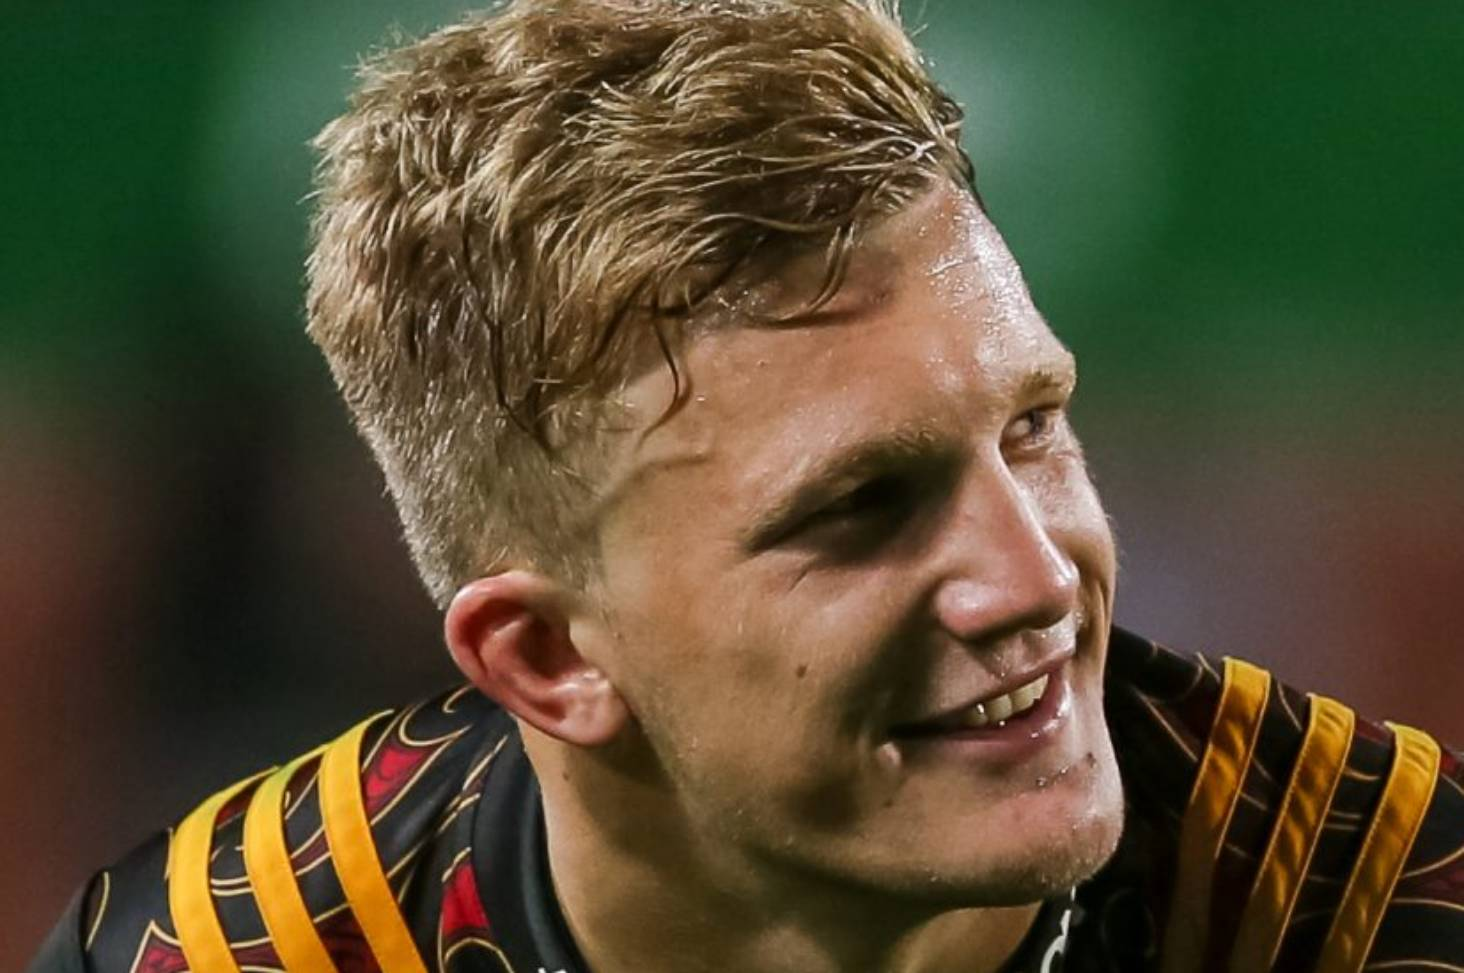 Image result for damian mckenzie all black smile